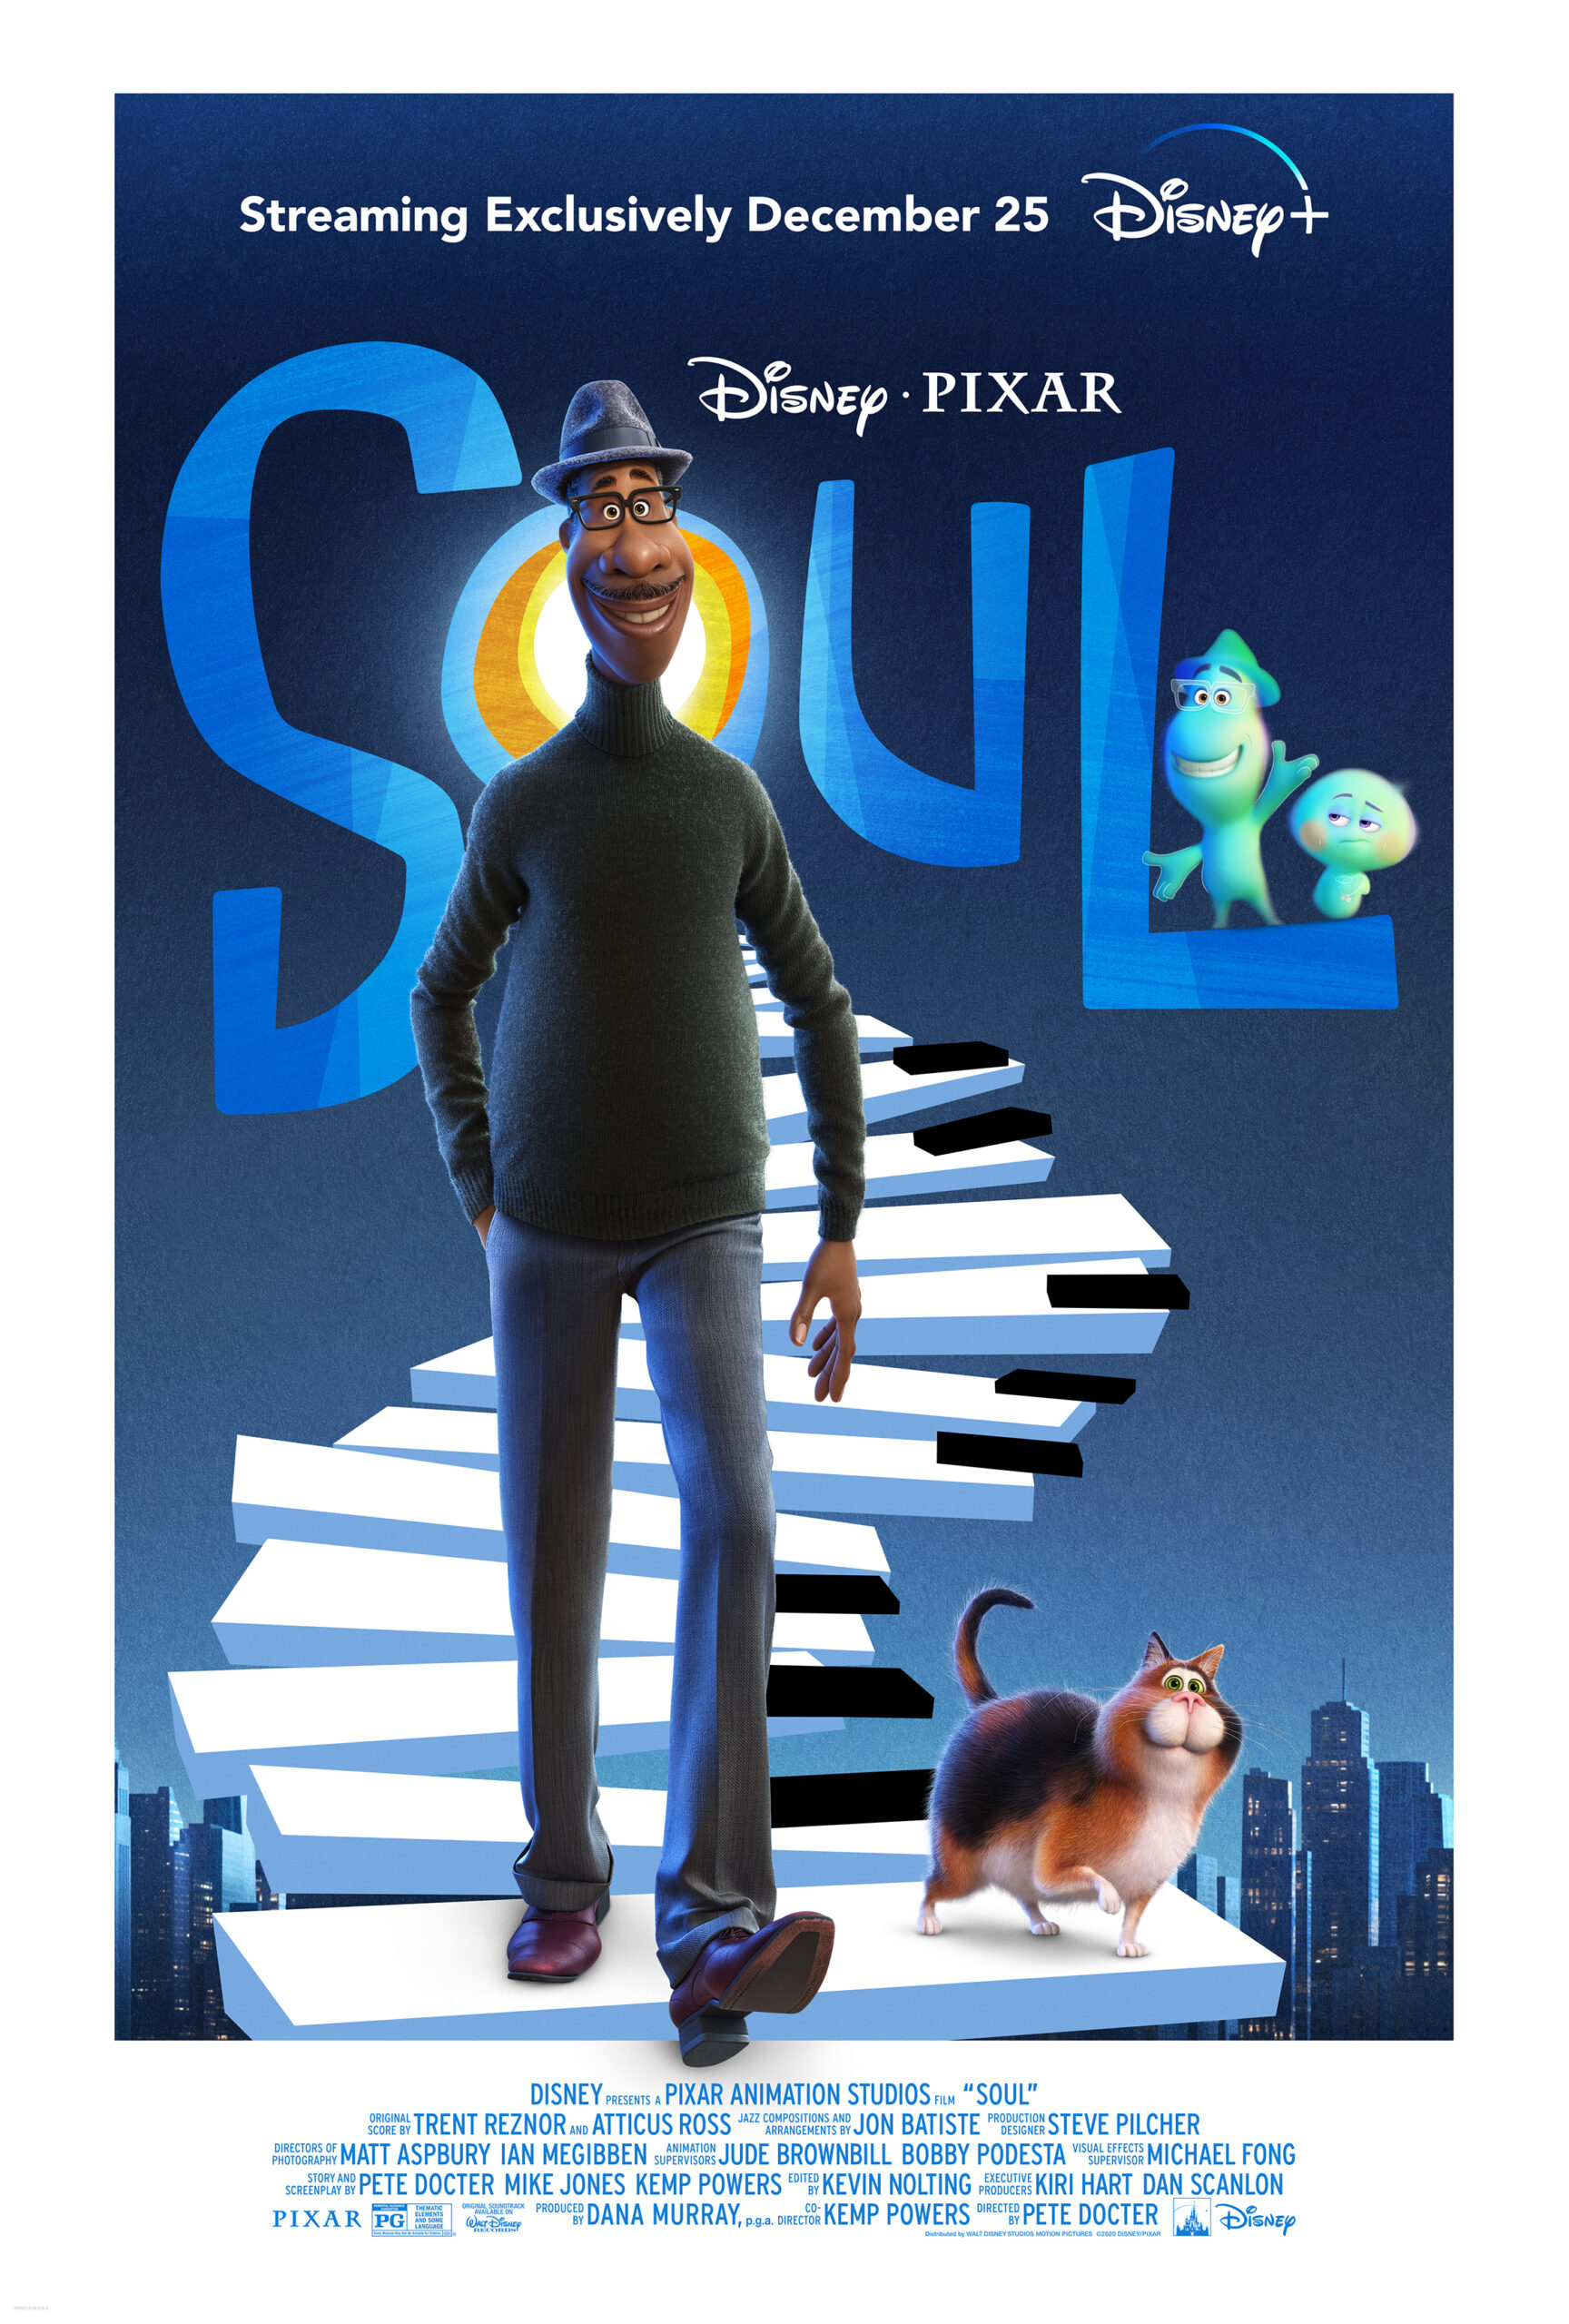 Looking for a review of Pixar Soul? This movie review shares what ages the film is good for!